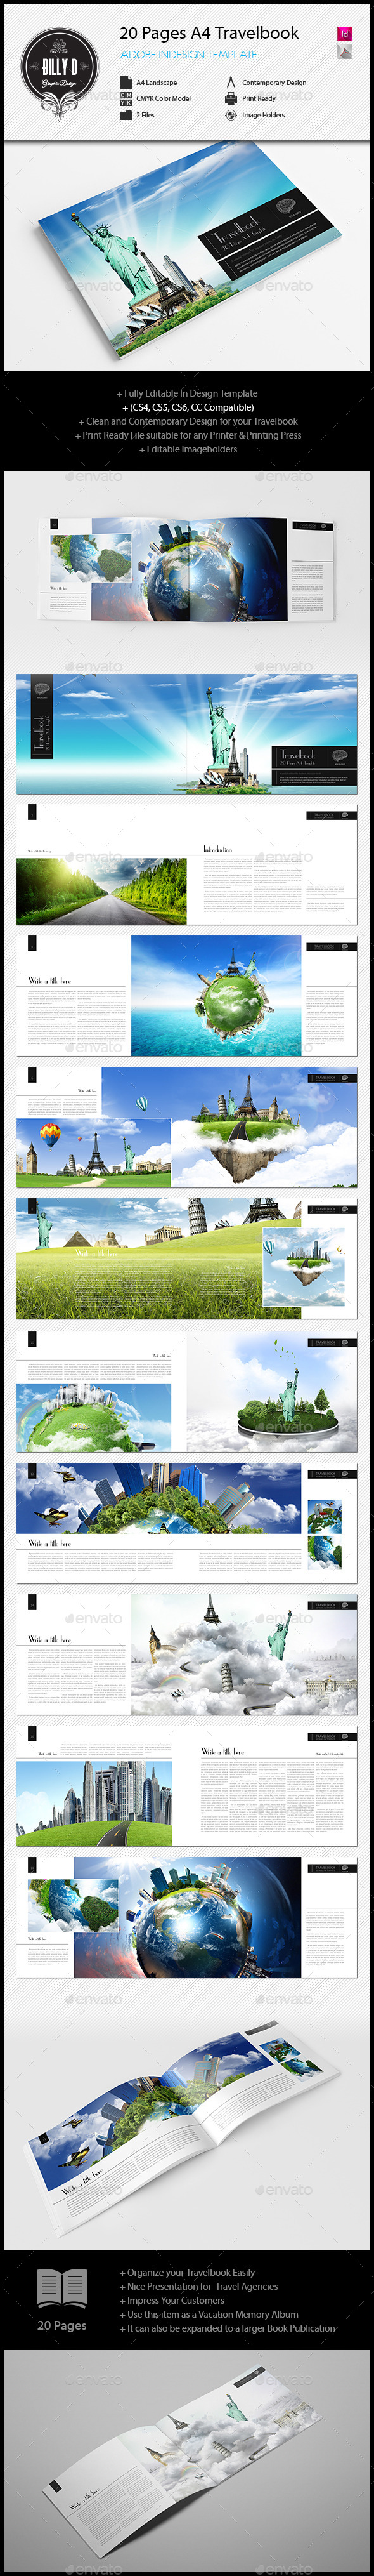 GraphicRiver 20 Pages A4 Travelbook Template 10833859